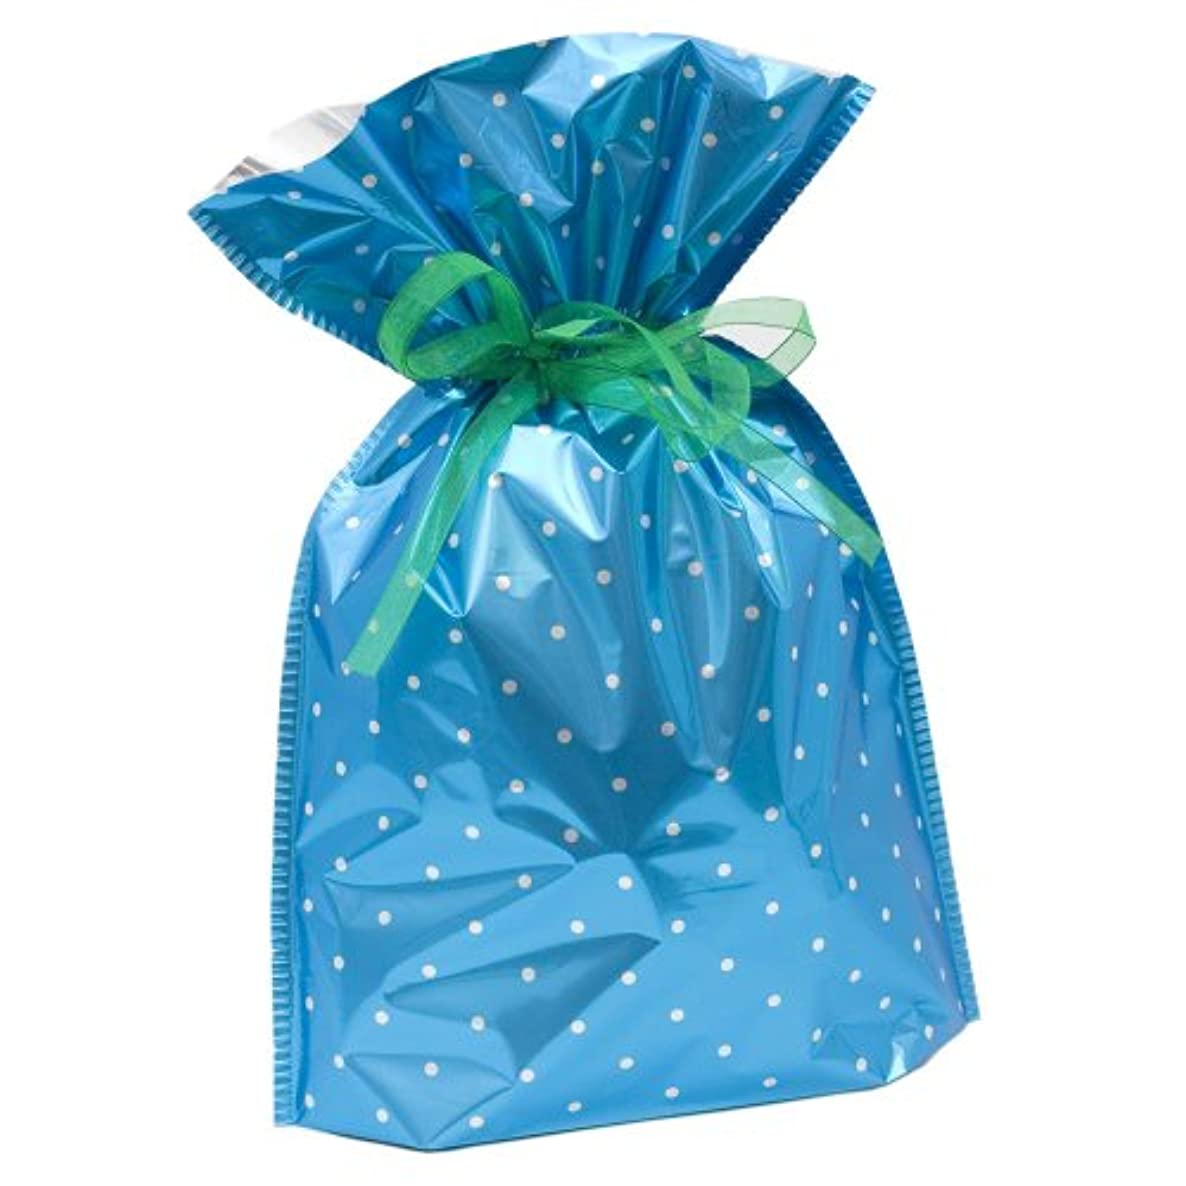 Gift Mate 21054-6 6-Piece Drawstring Gift Bags, Medium, Blue Polka Dot